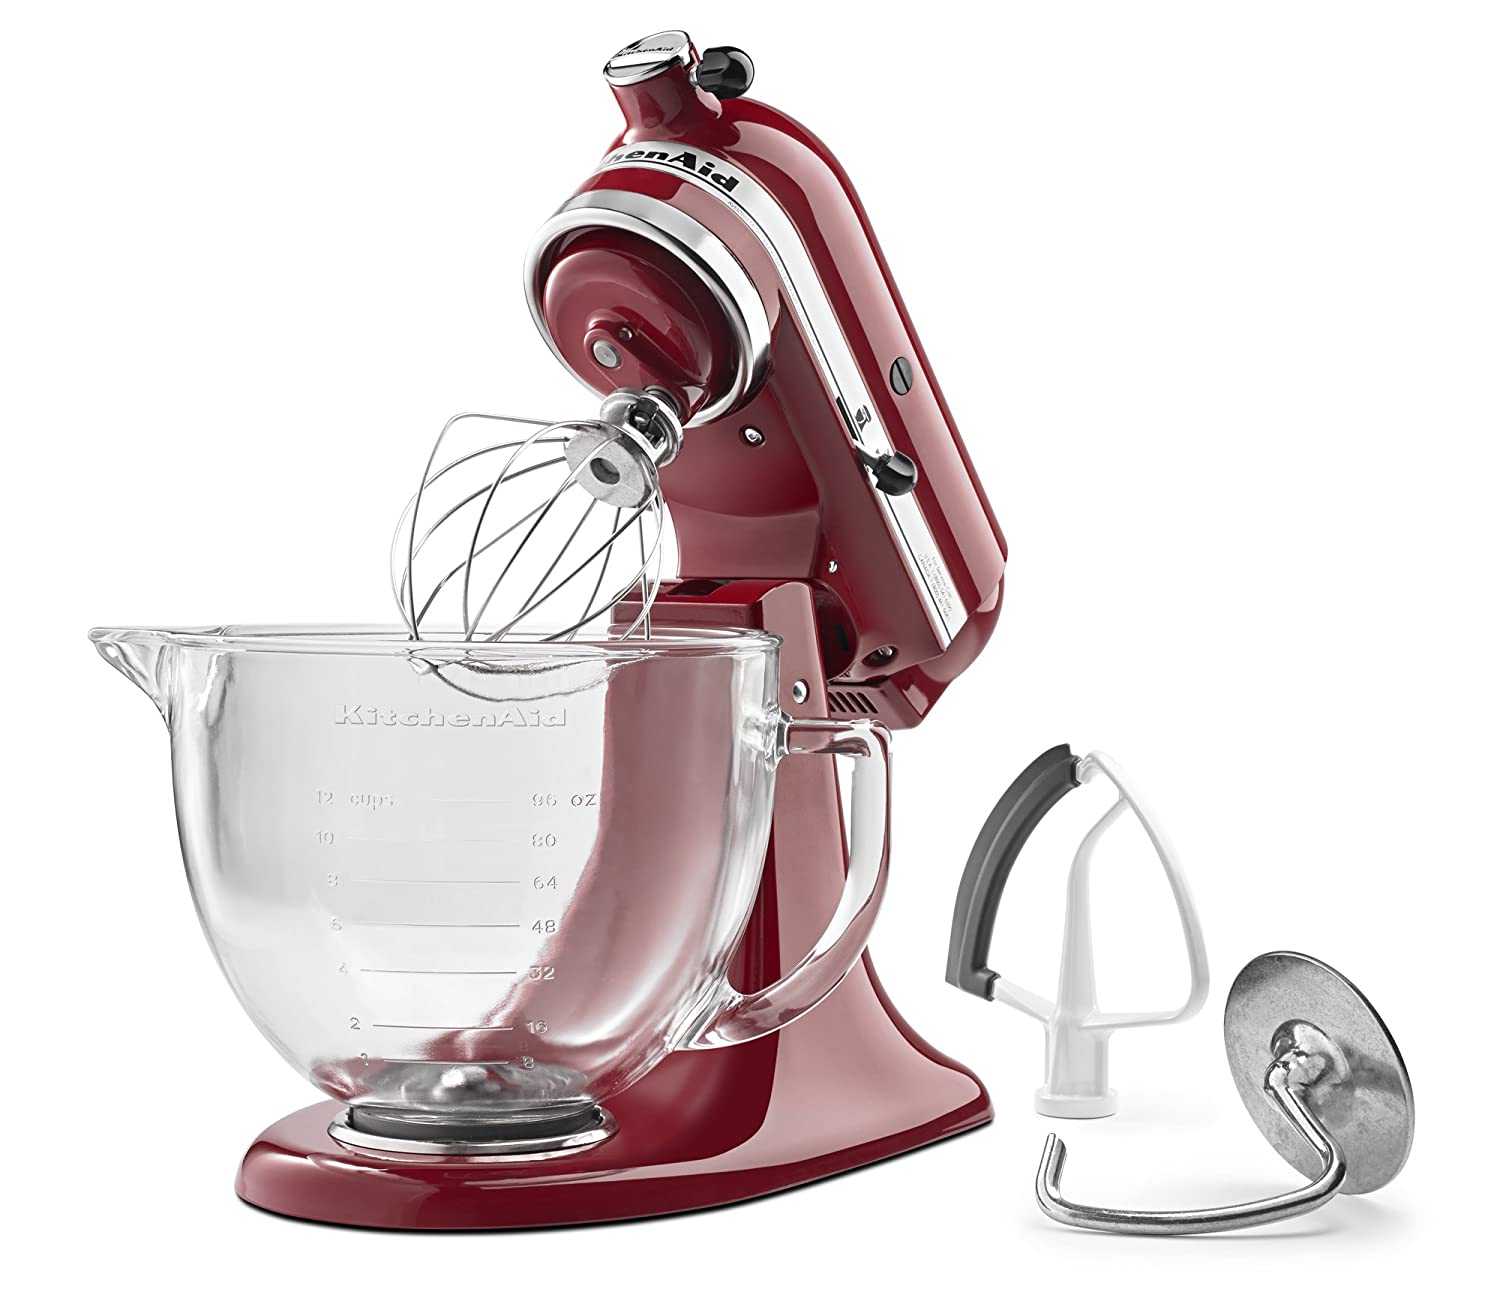 Kitchenaid Ksm105gbcer 5 Qt Tilt Head Stand Mixer With Wiring Diagrams For Sunbeam Mixers Glass Bowl And Flex Edge Beater Empire Red Kitchen Dining